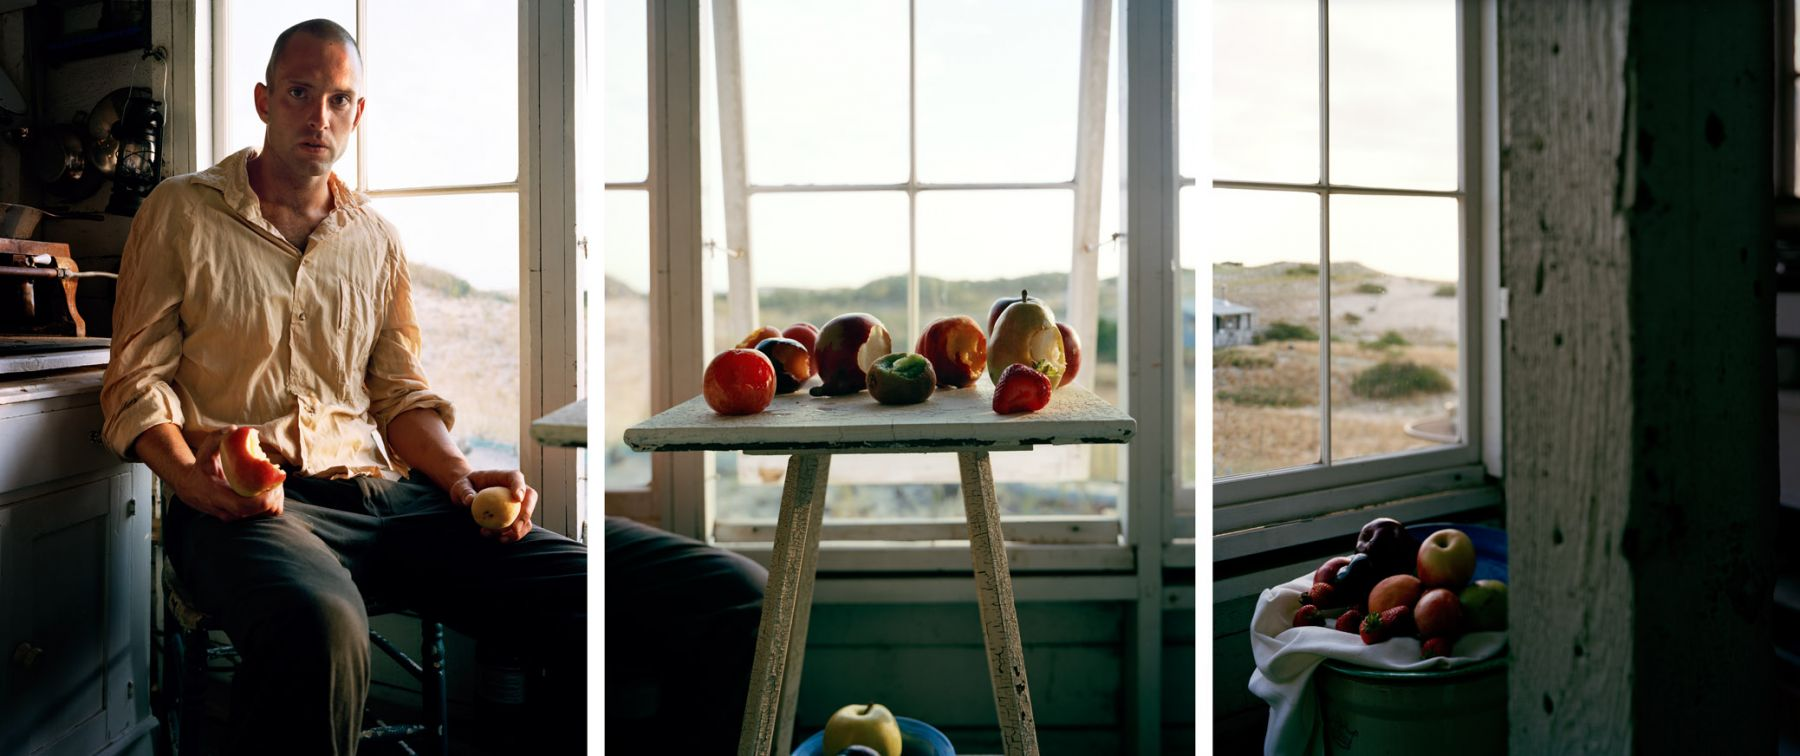 Eric Discerning, 2009. Three-panel archival pigment print, available as 24 x 60 or 40 x 90 inches.